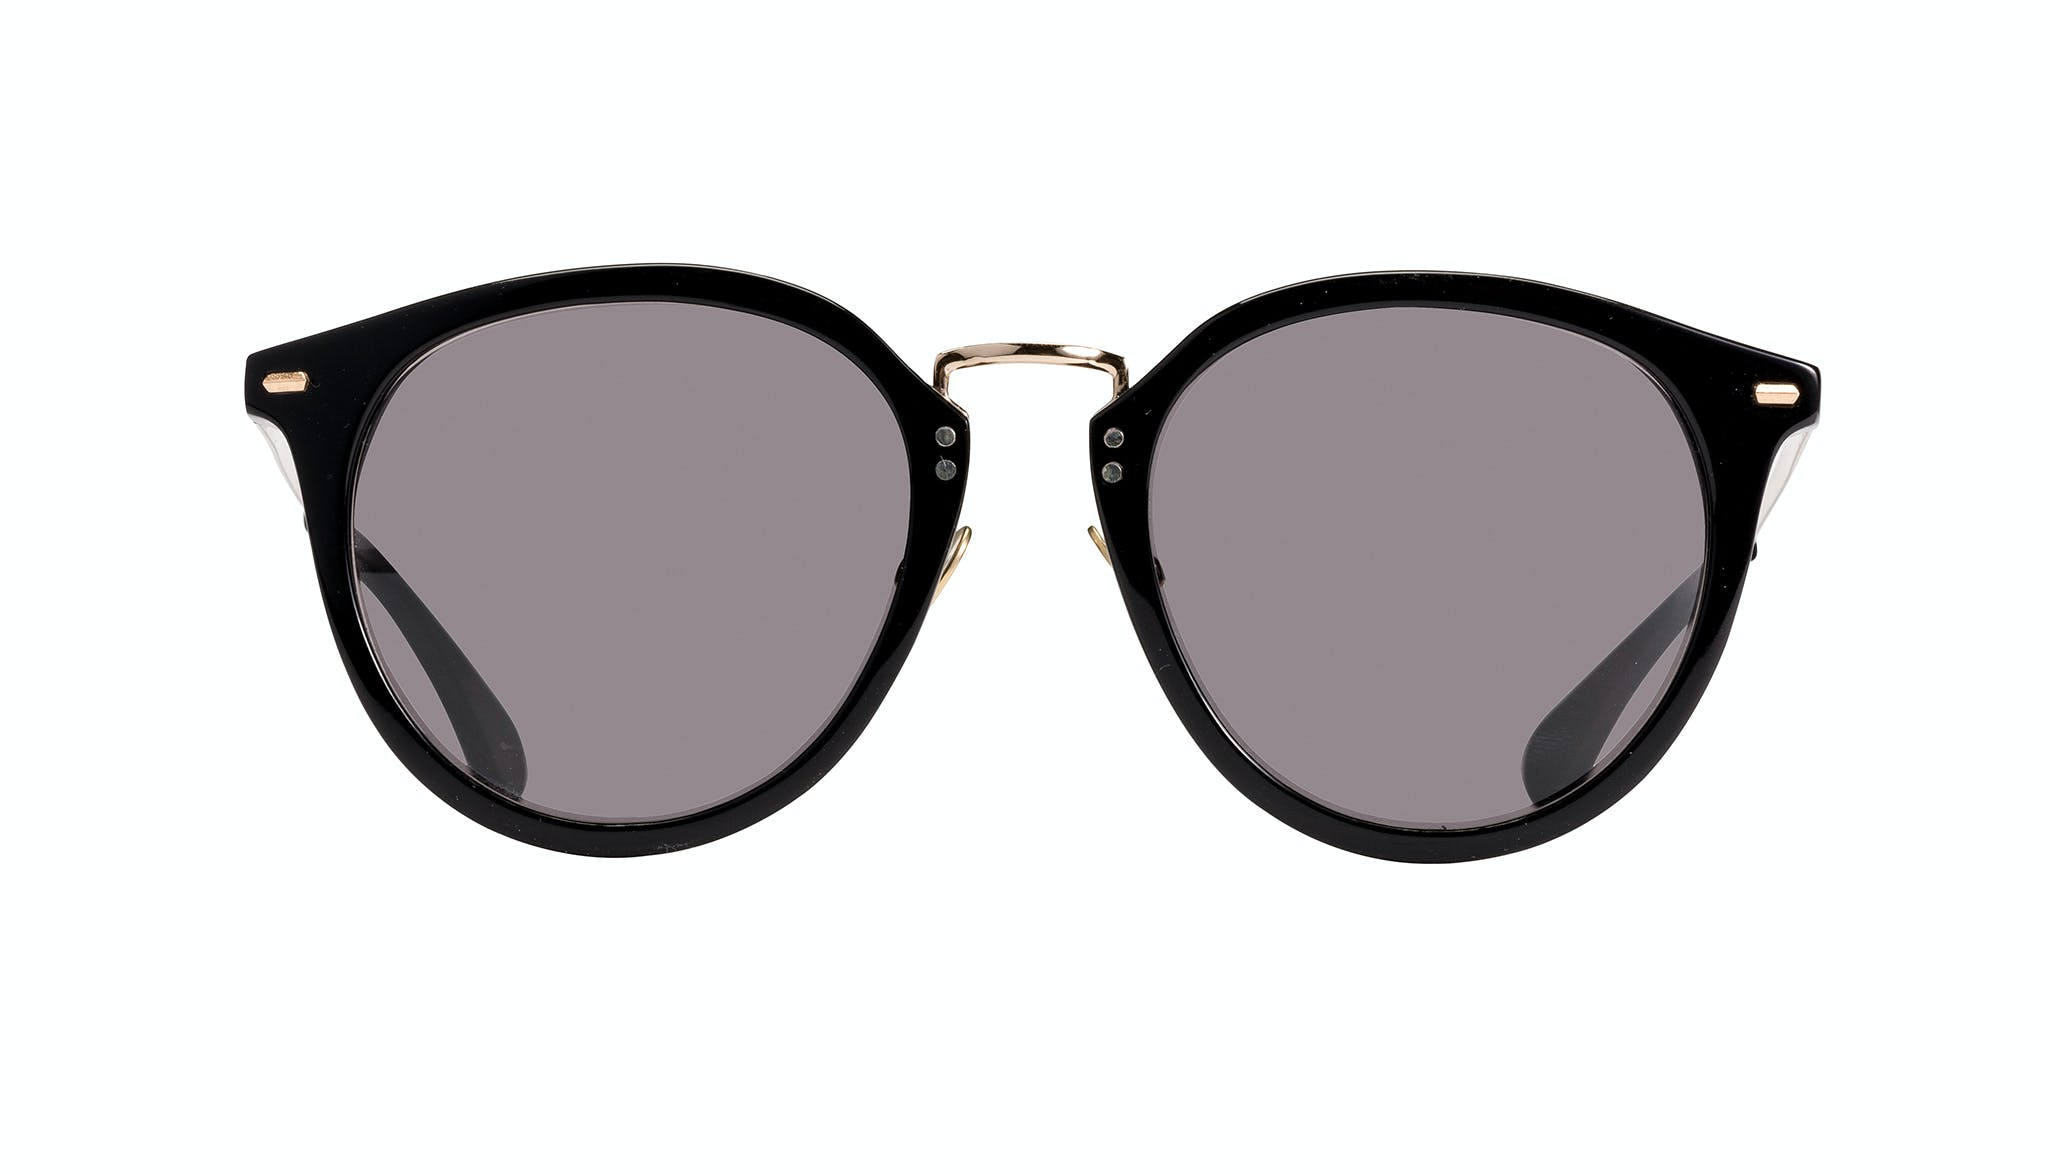 Affordable Fashion Glasses Round Sunglasses Women Poppy Ferris Front